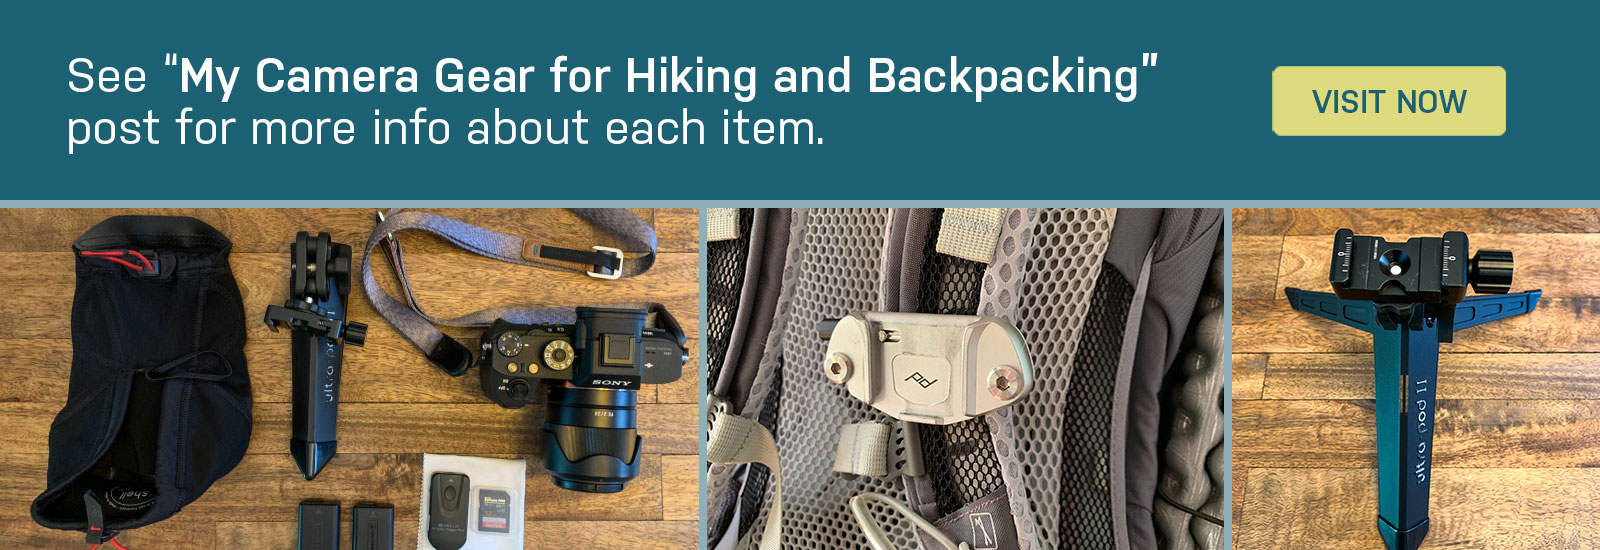 my camera gear for hiking & backpacking